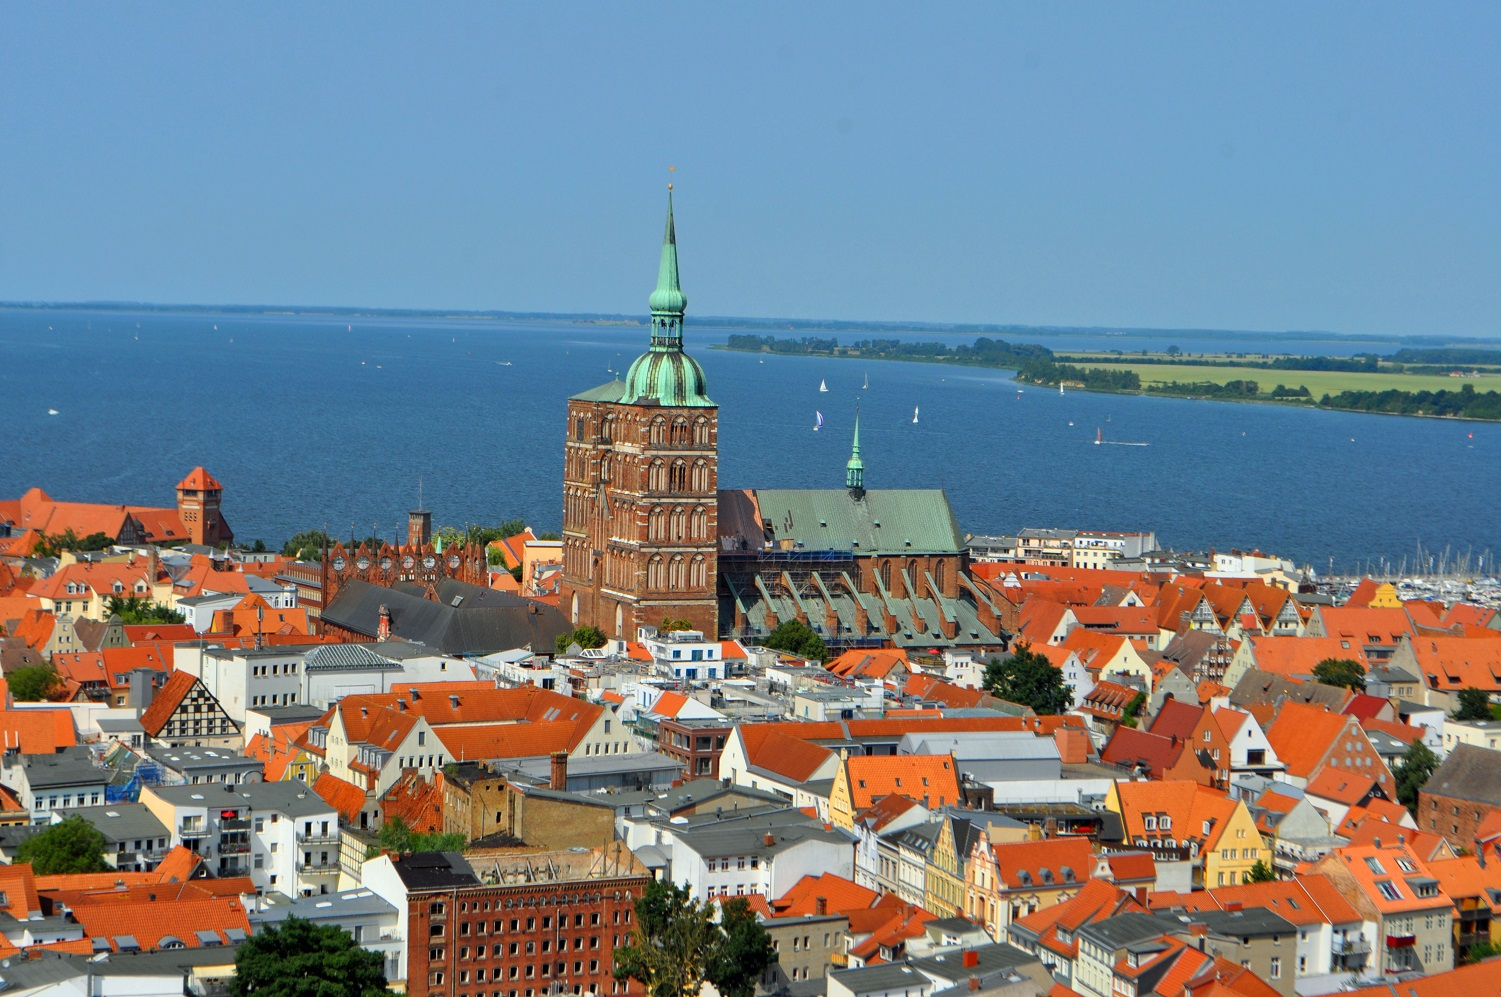 Filming locations in Germany - Stralsund & Wismar